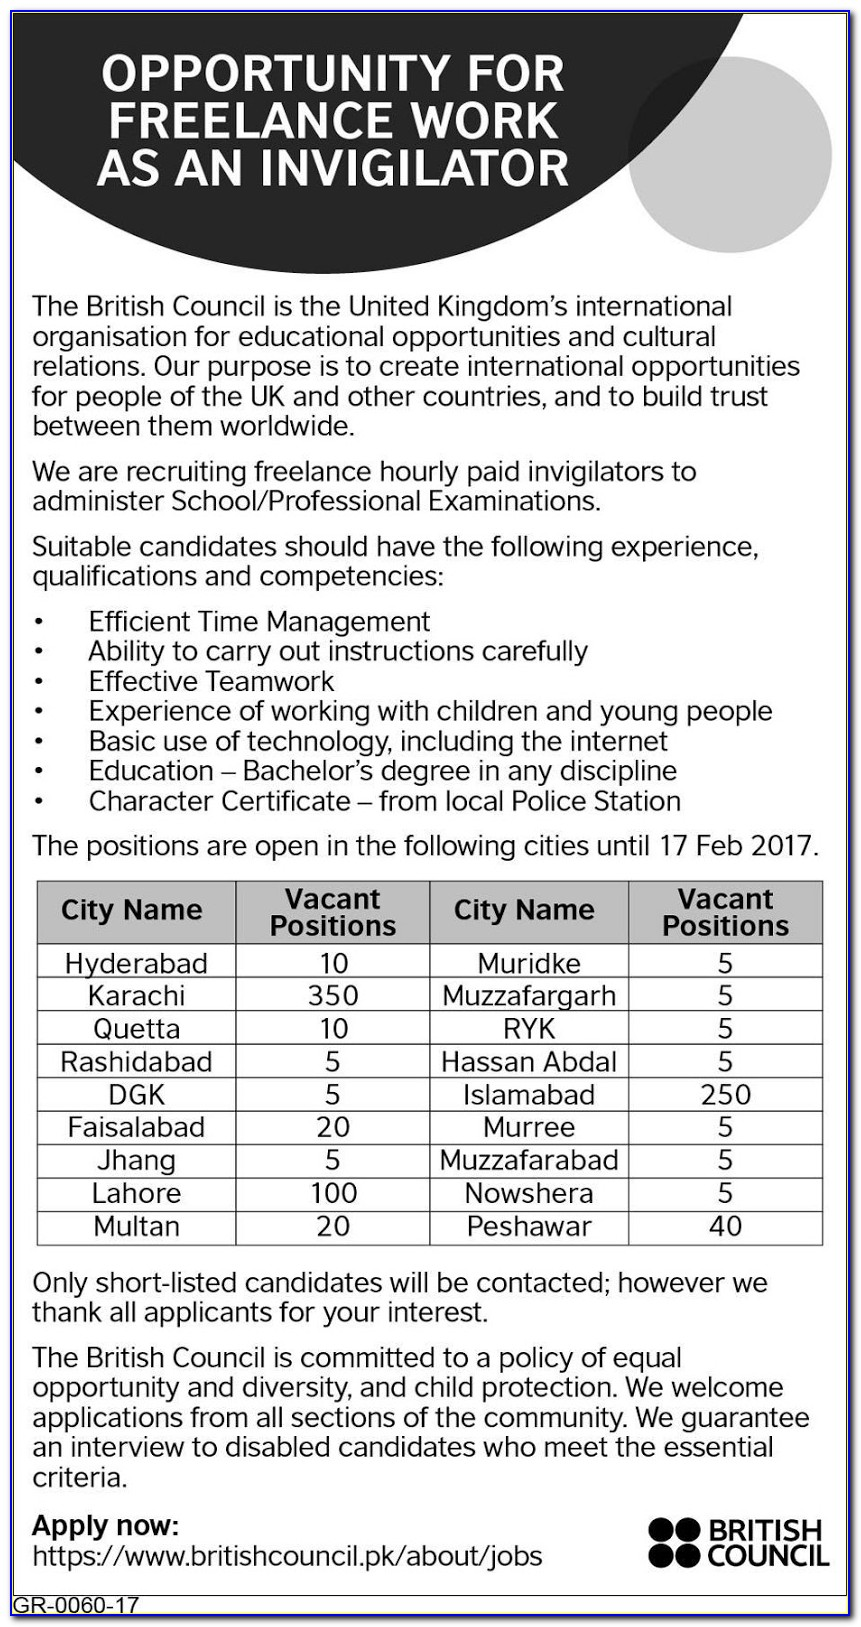 Nys Certificate Of Good Standing Request Form